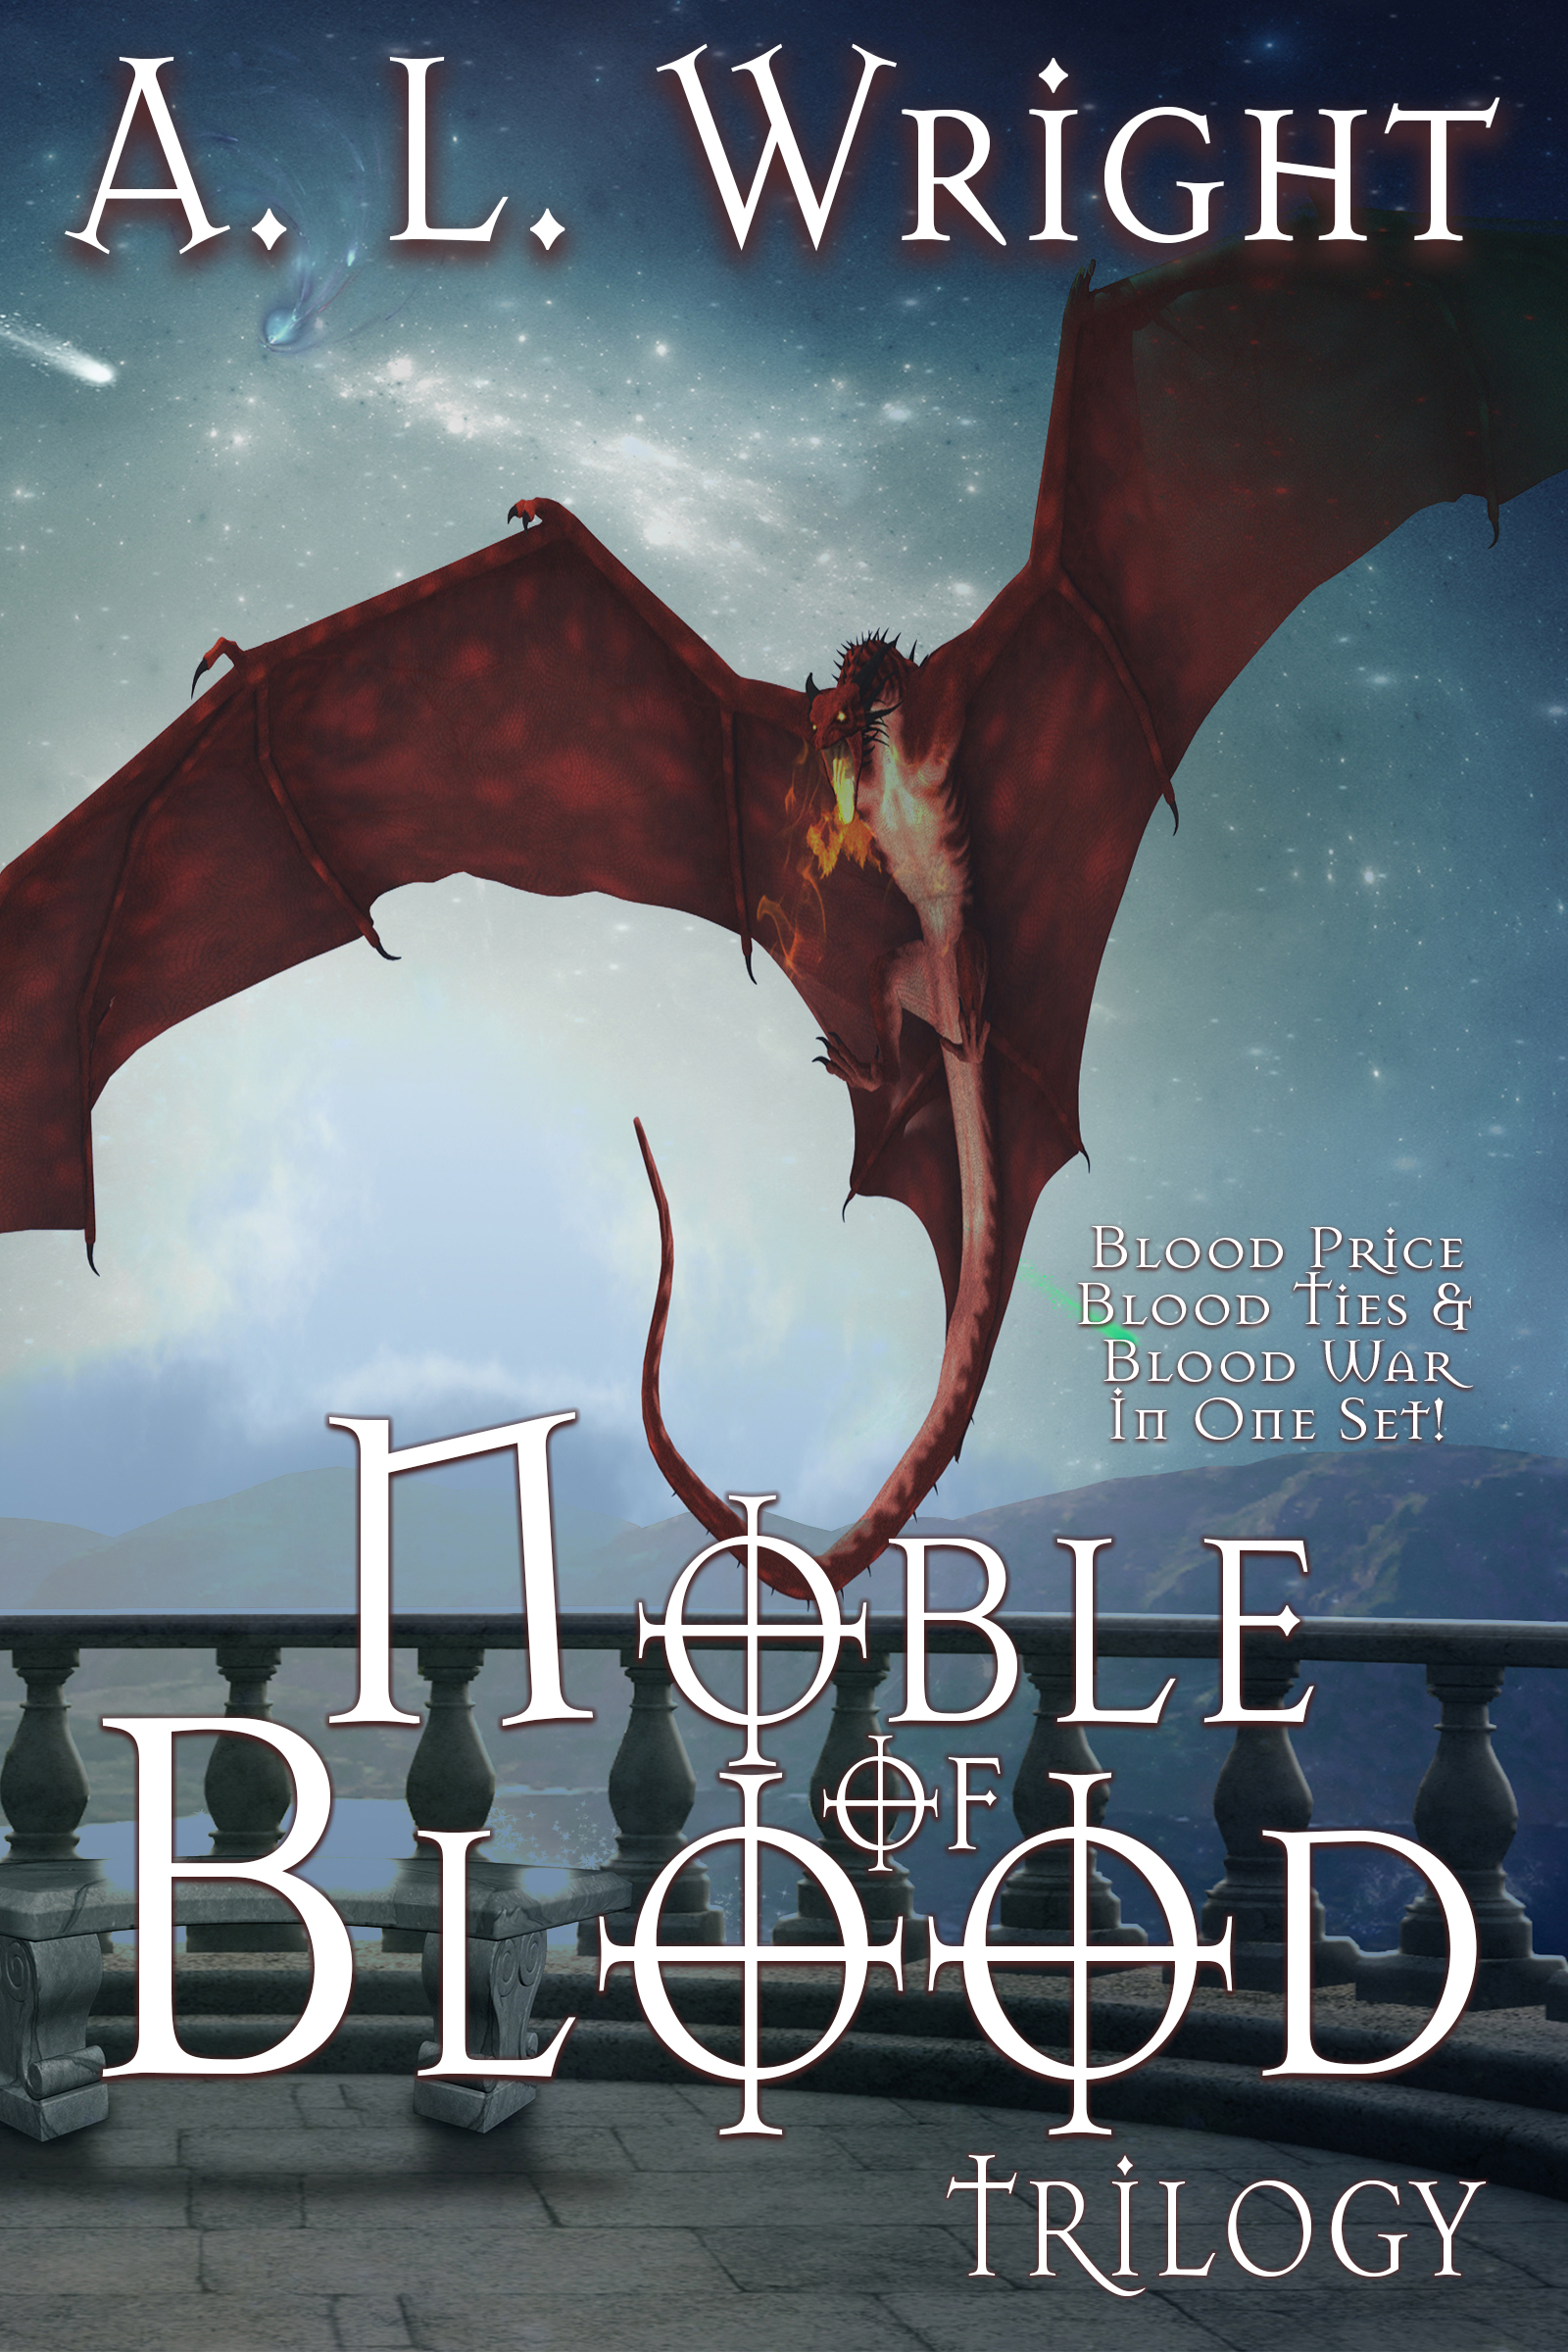 Noble of Blood Boxed Set - The entire Trilogy in one eBook!